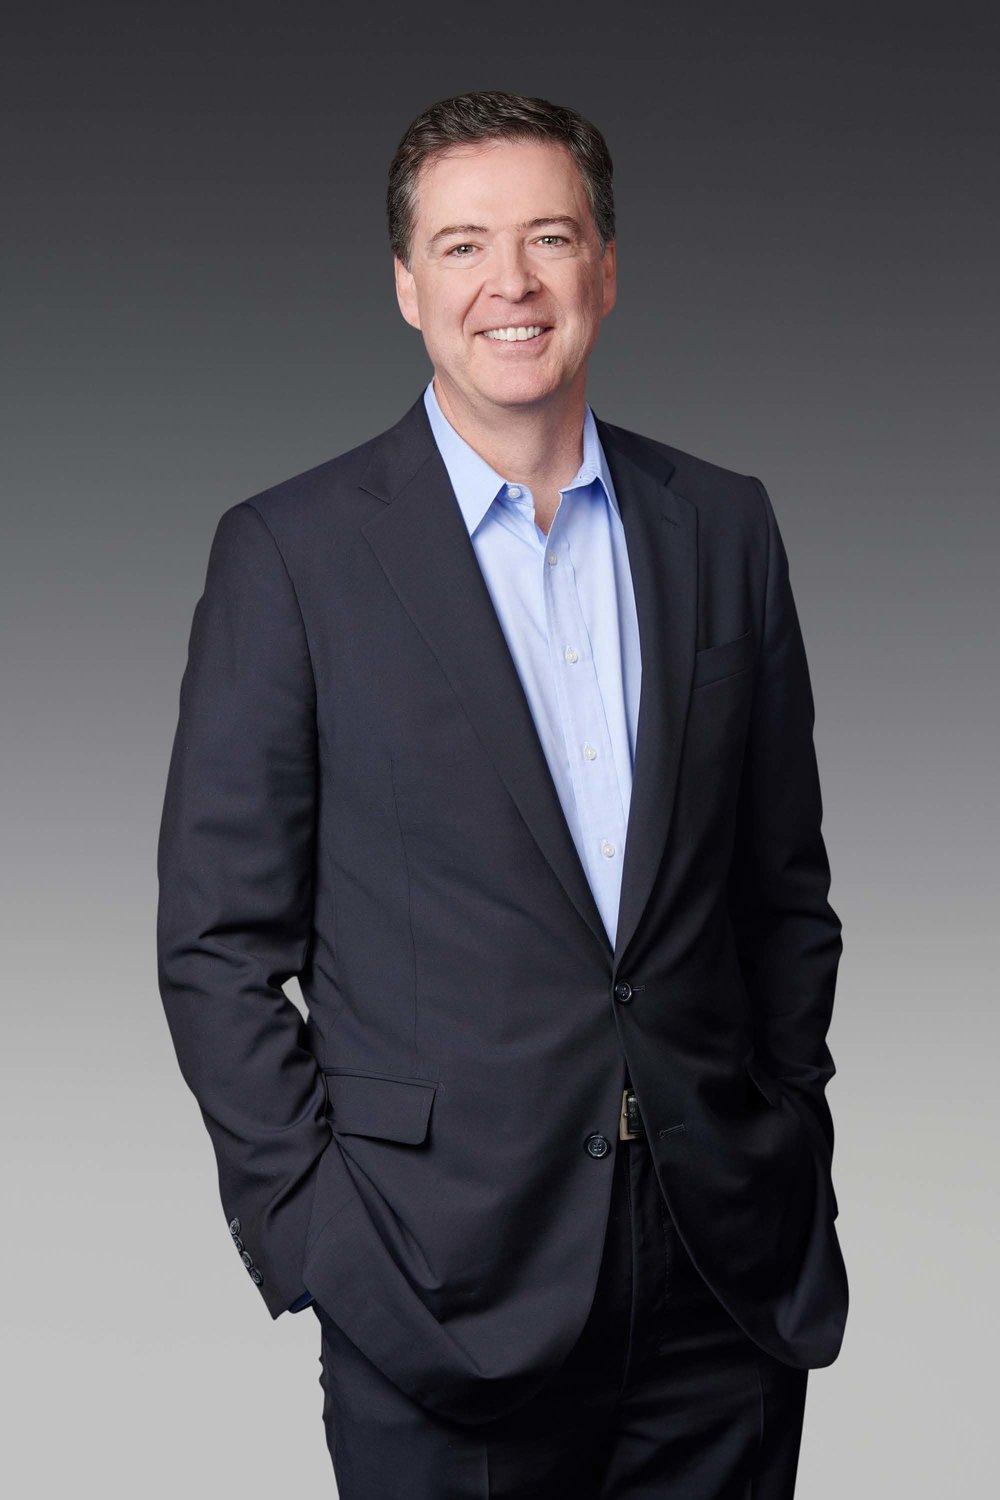 Author Photo - James Comey_credit Rouse Photography Group, LLC - Publicity Only (High Res) (1).jpg